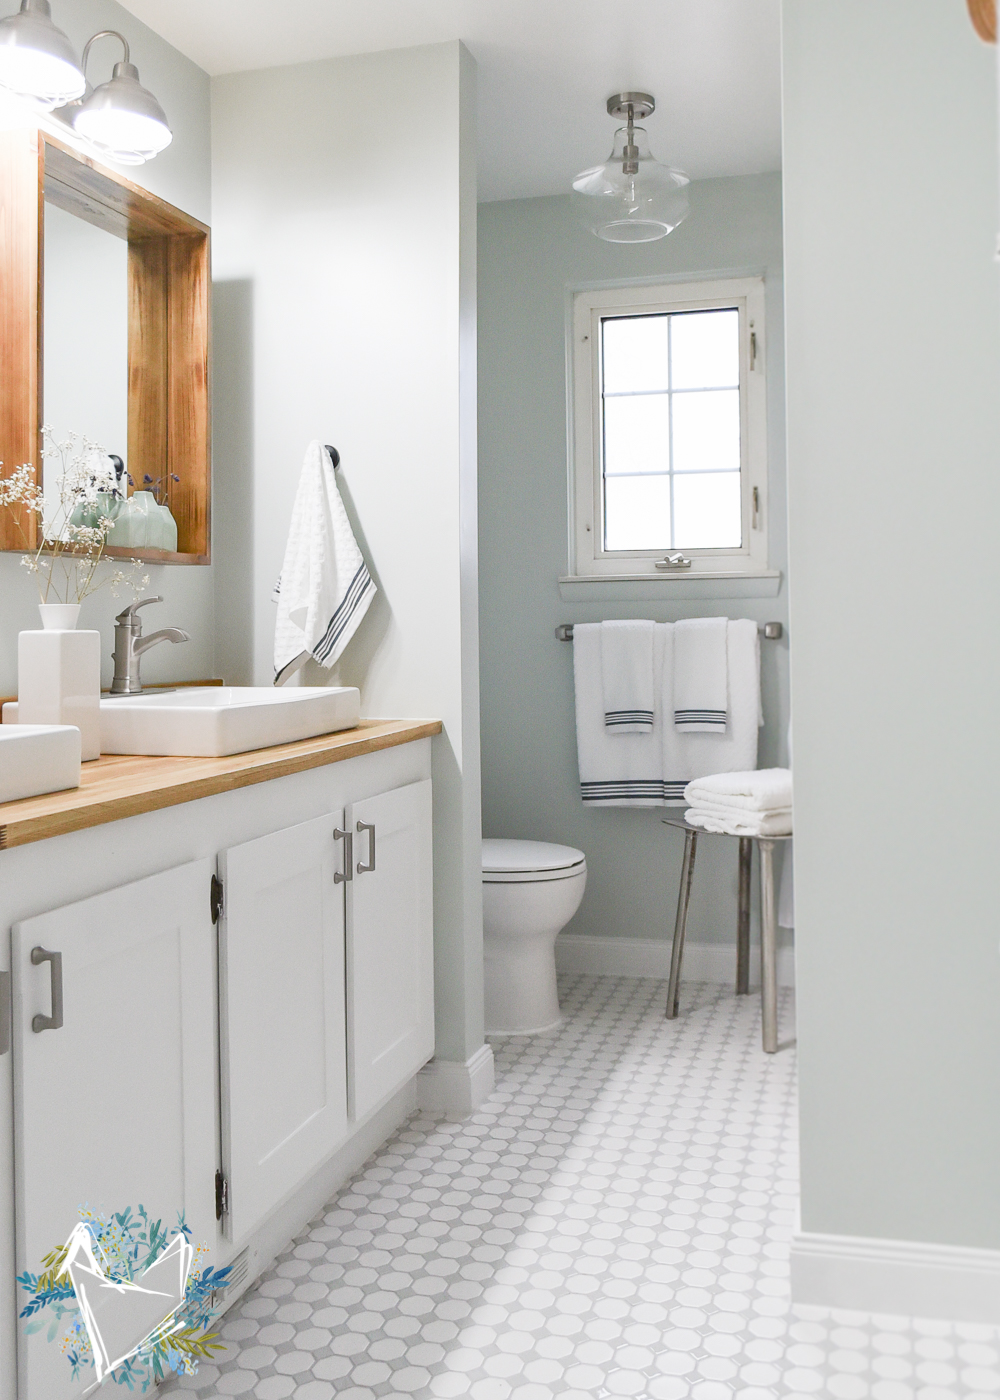 These Tips For Renovating A Bathroom Will Save You